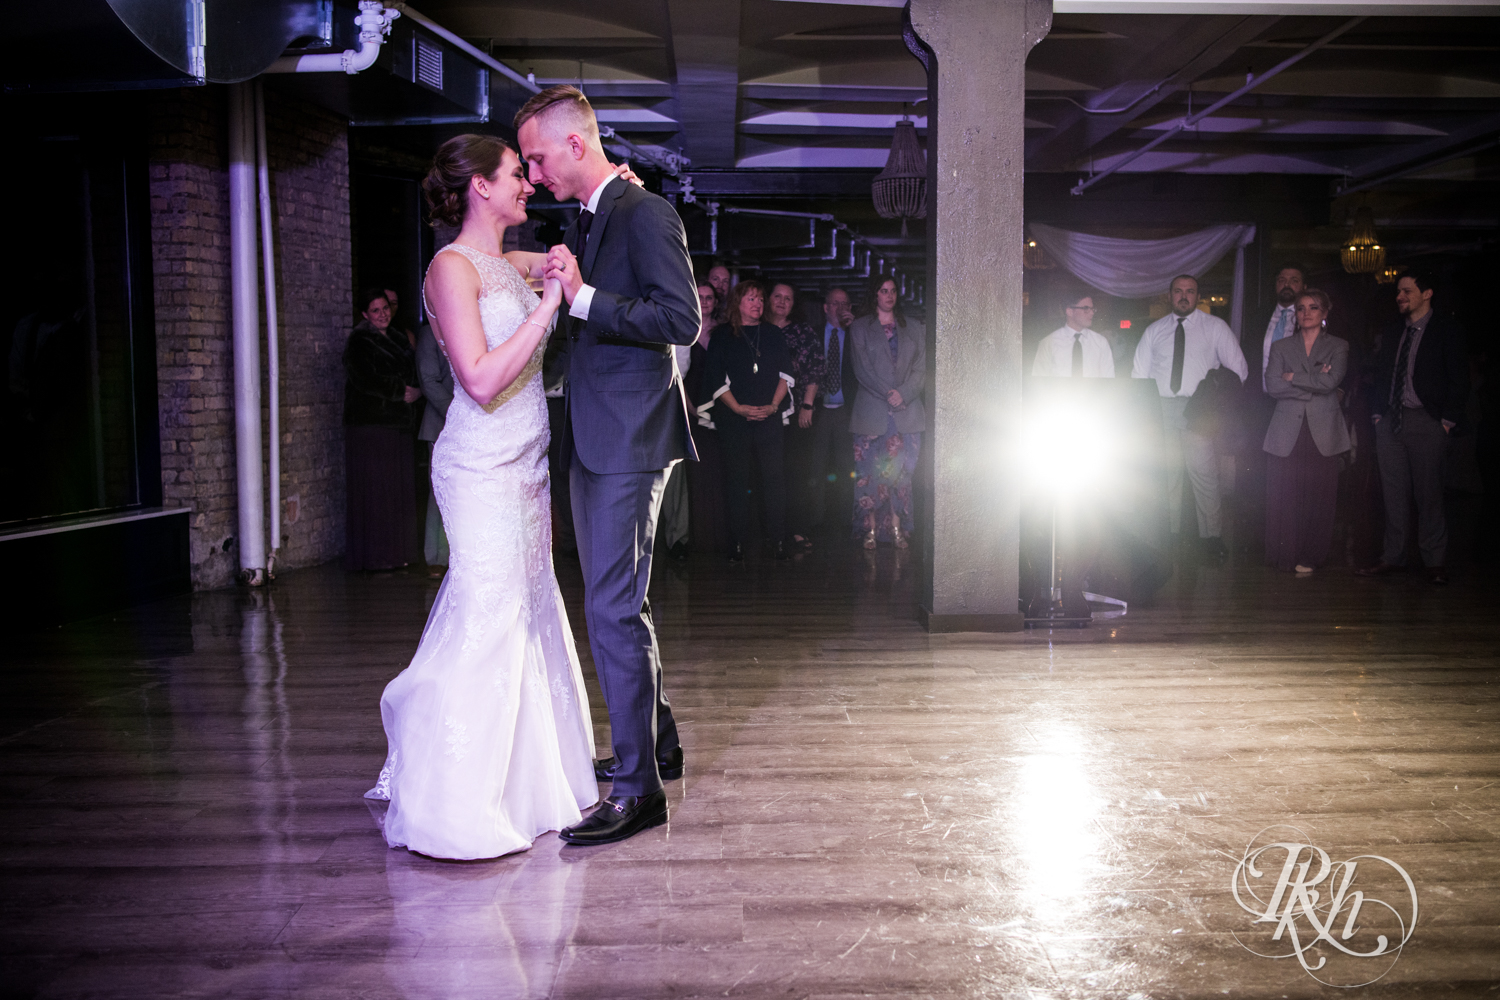 Jillian & Jared - Minnesota Wedding Photography - Lumber Exchange Event Center - RKH Images - Blog (74 of 87).jpg